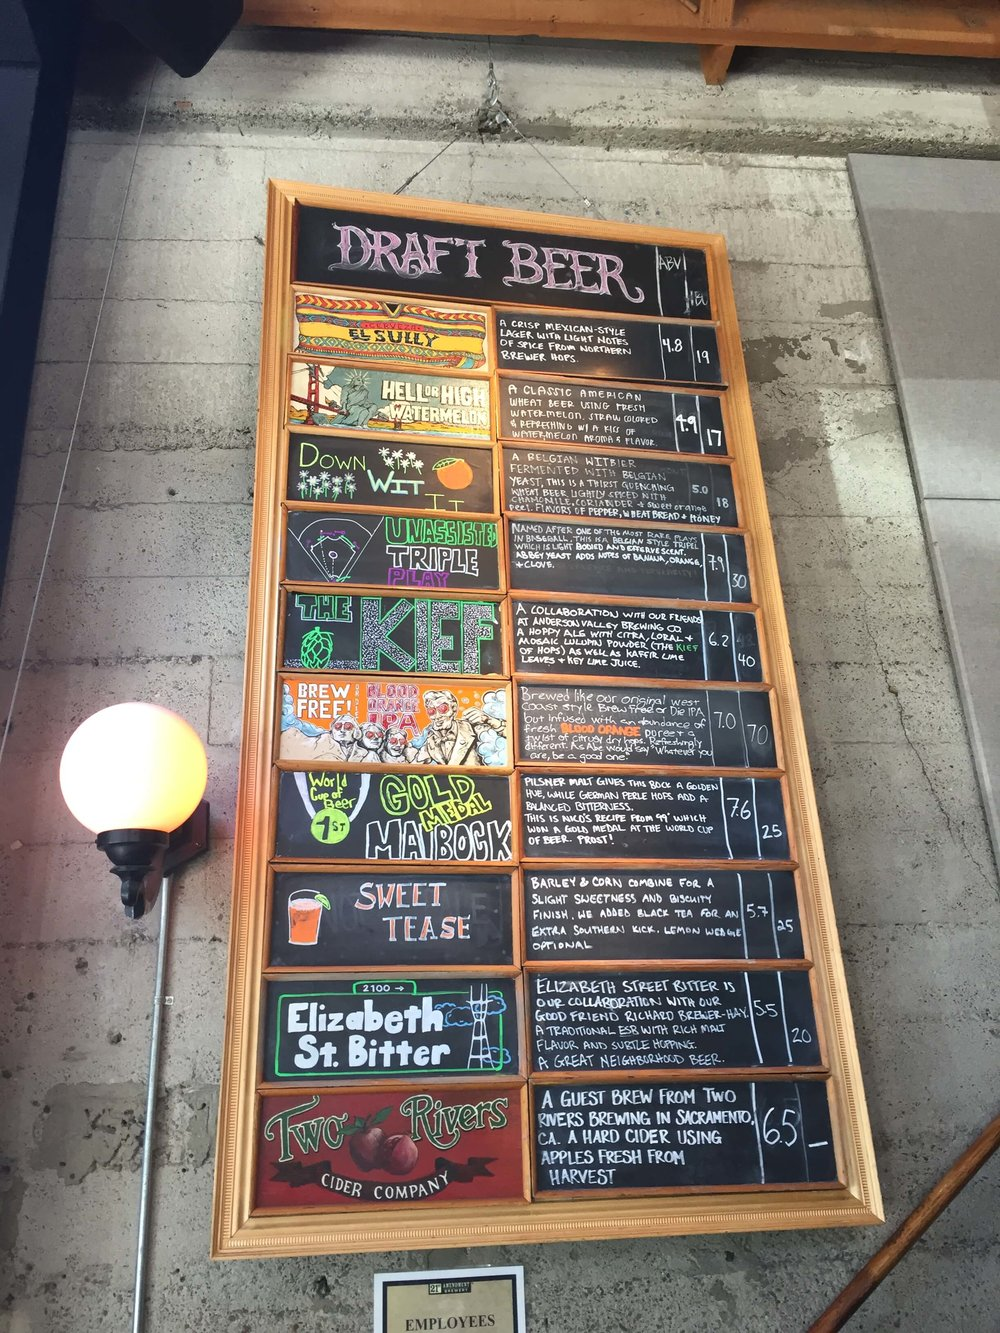 21st Amendment Beer List